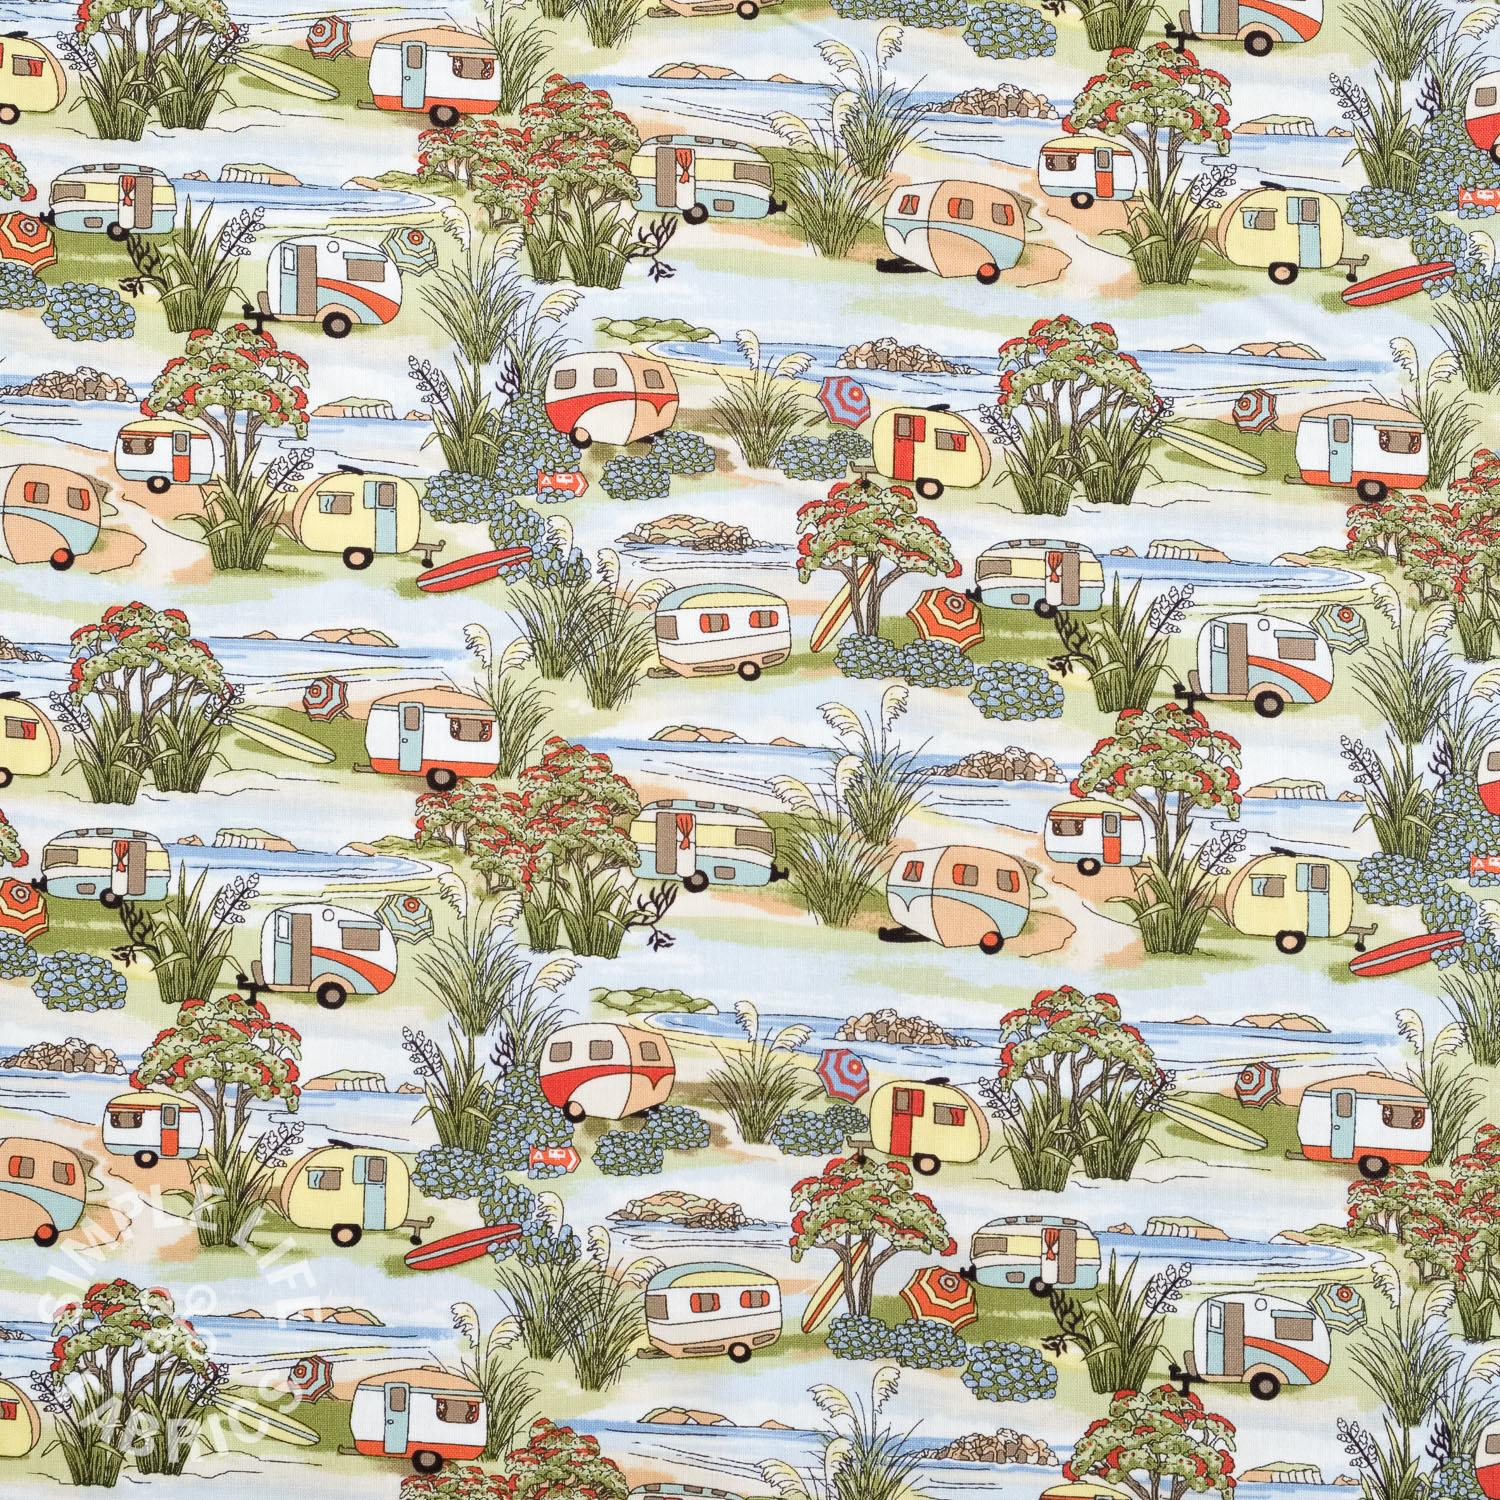 Cotton fabric with vintage caravans